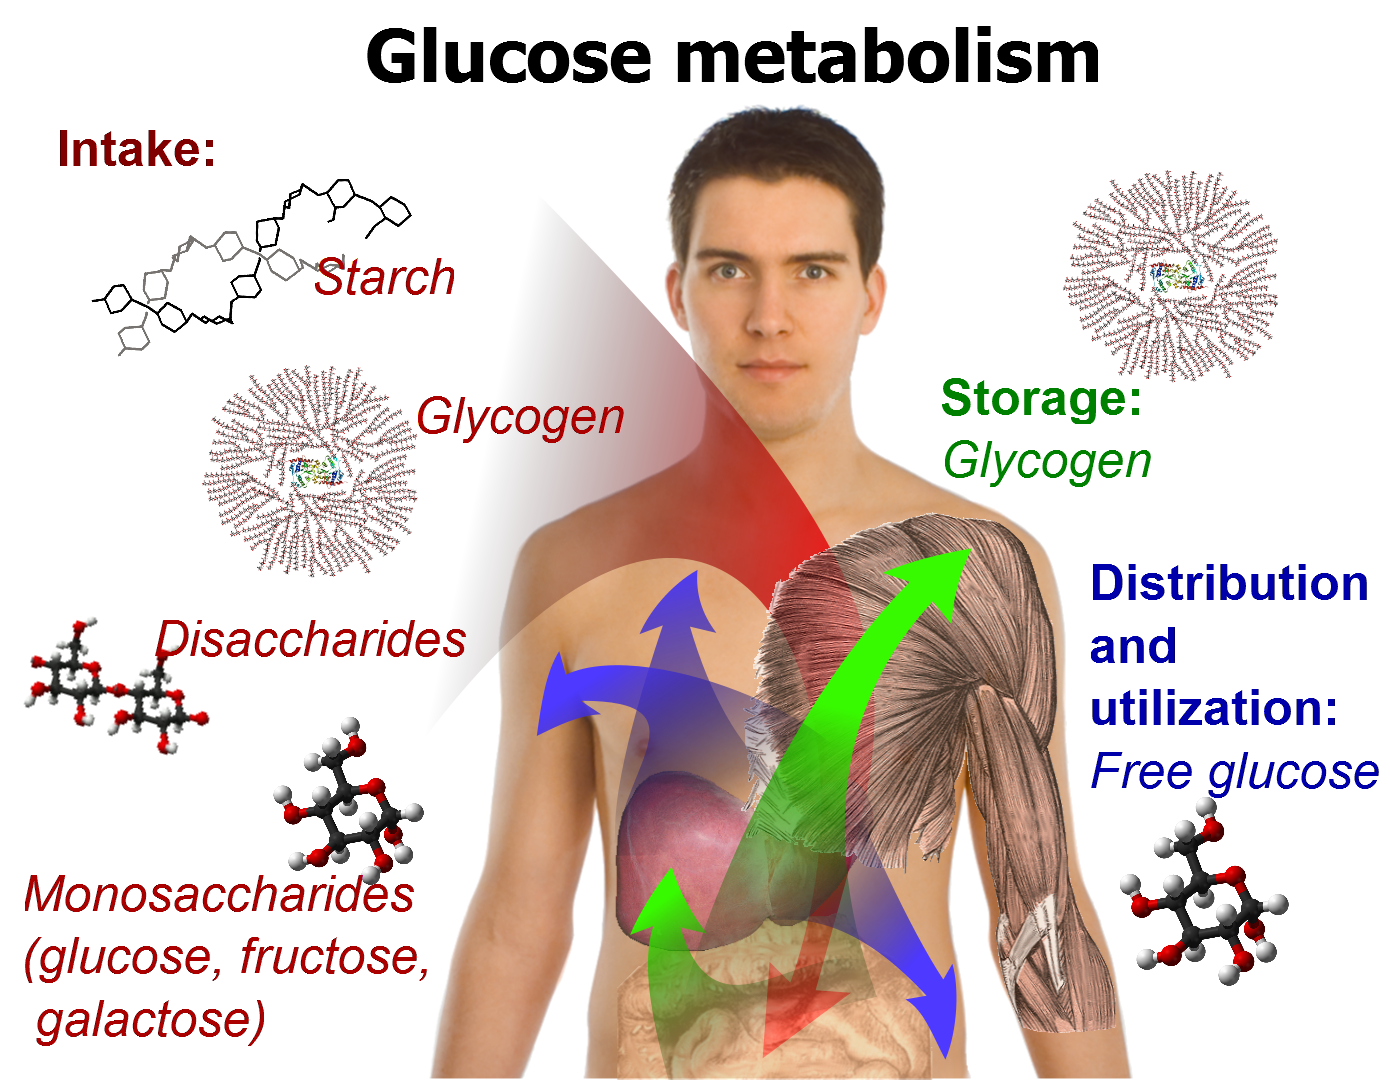 a study on metabolism Metabolism is defined as the sum of all of the chemical reactions within the human body this includes any chemical process by which a substance is broken down, produced, or chemically modified.